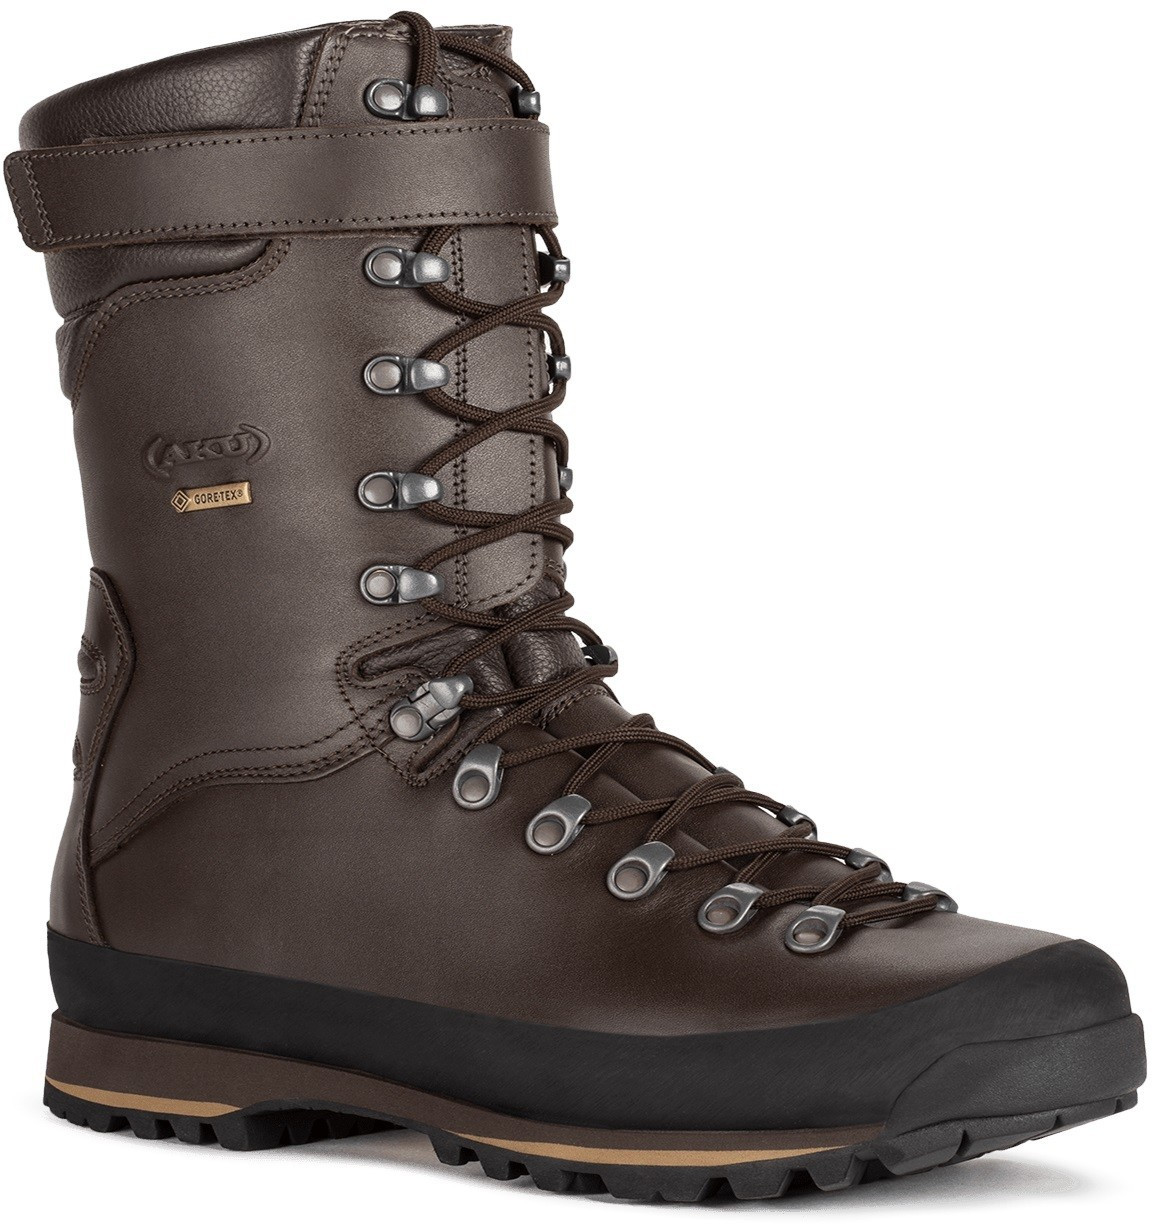 Aku Jager Evo High GTX brown